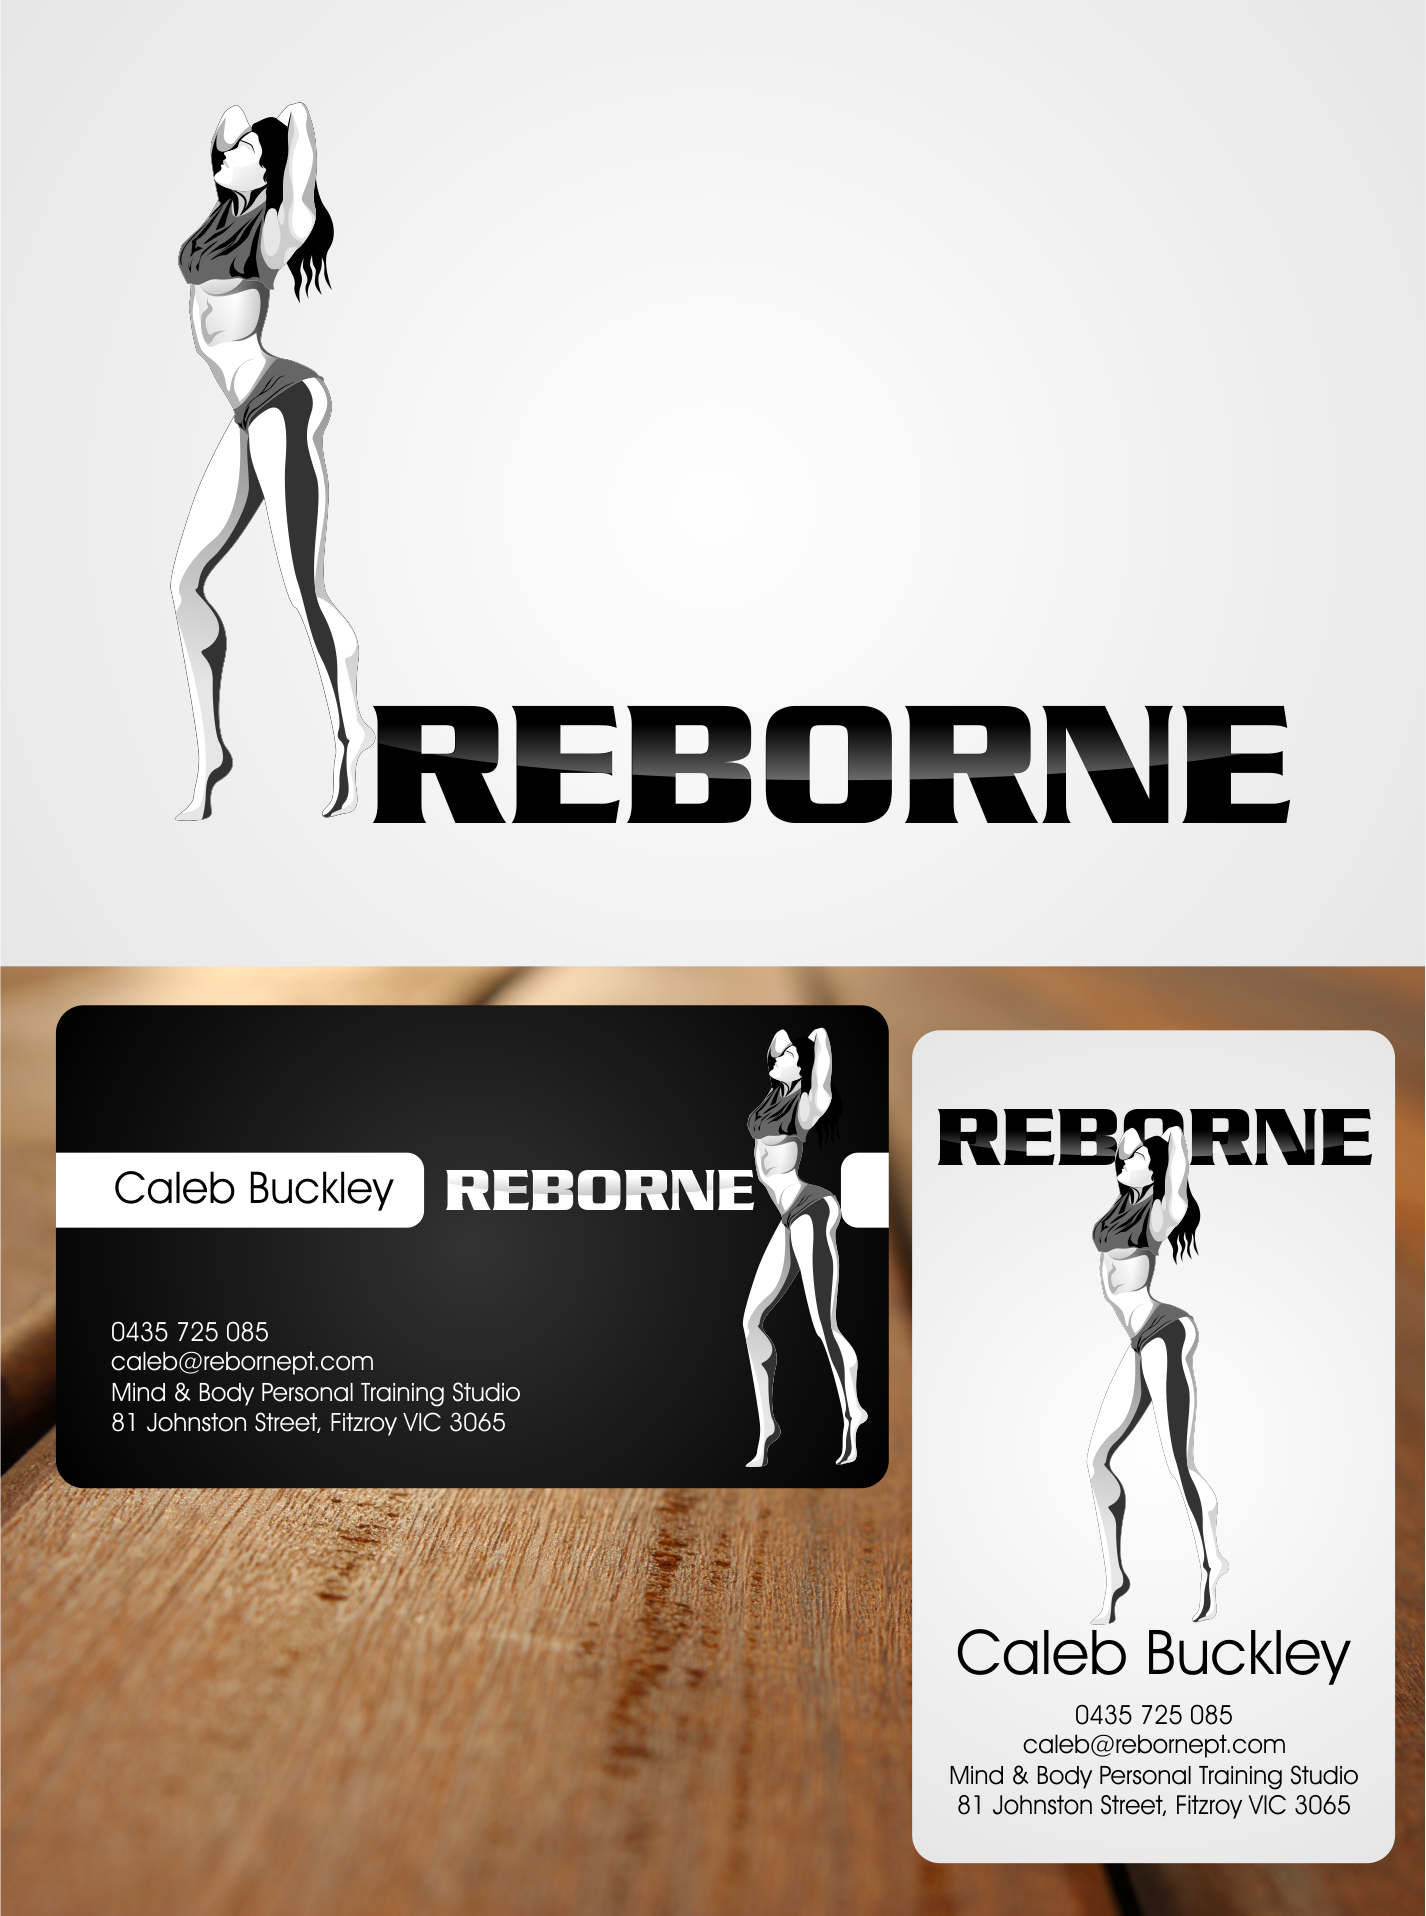 New logo and business card wanted for Reborne